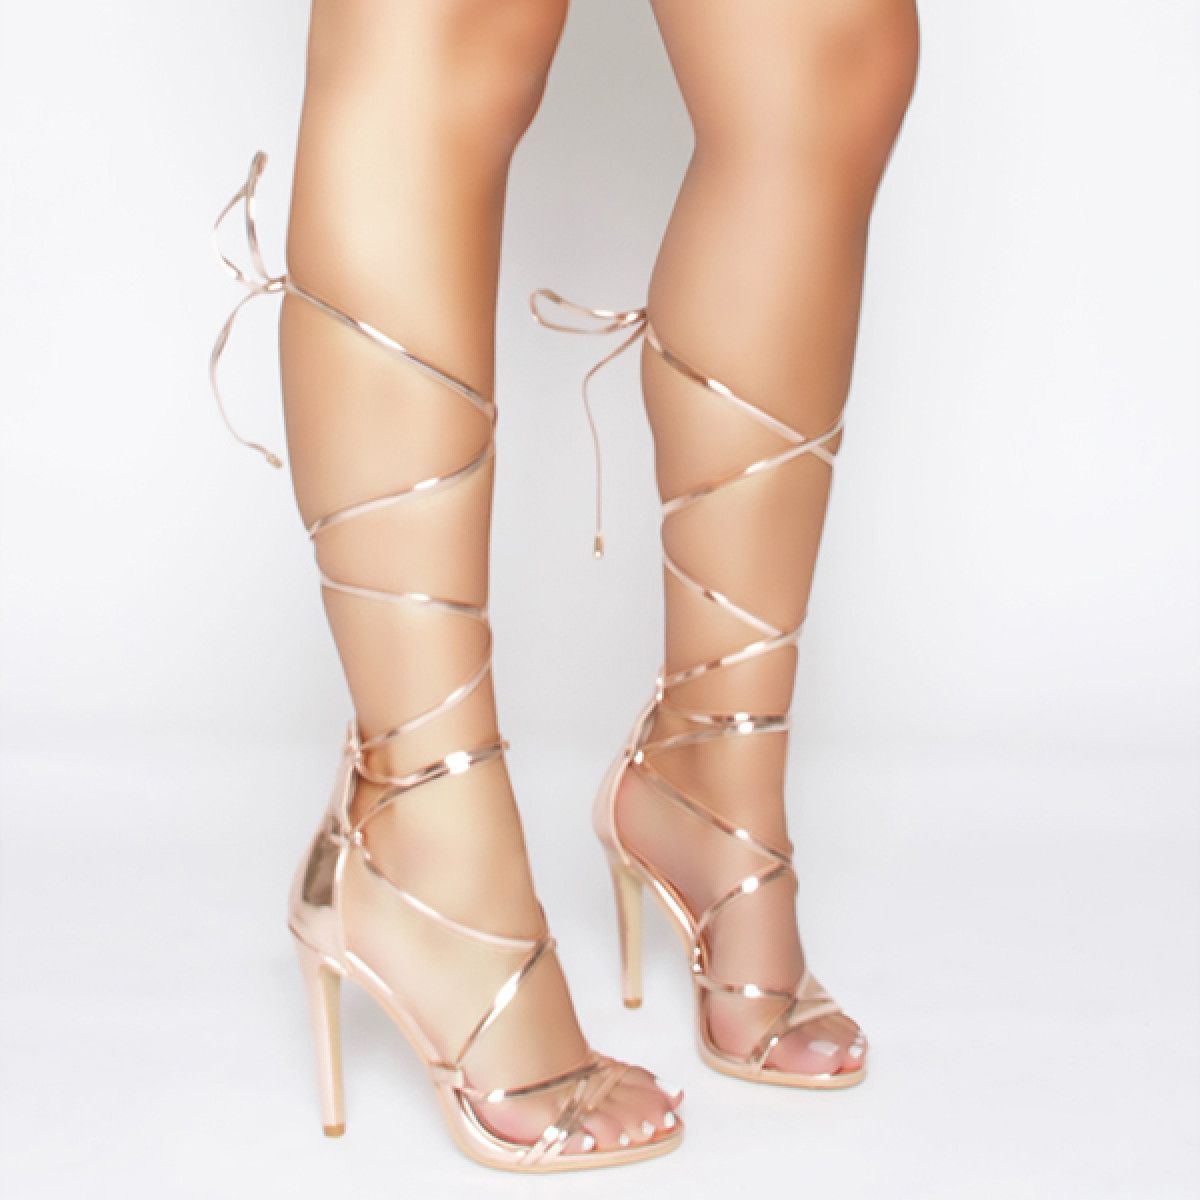 bcceb2c80f Demi Rose Gold Lace Up Stiletto Heels : Simmi Shoes | Shoes in 2019 ...